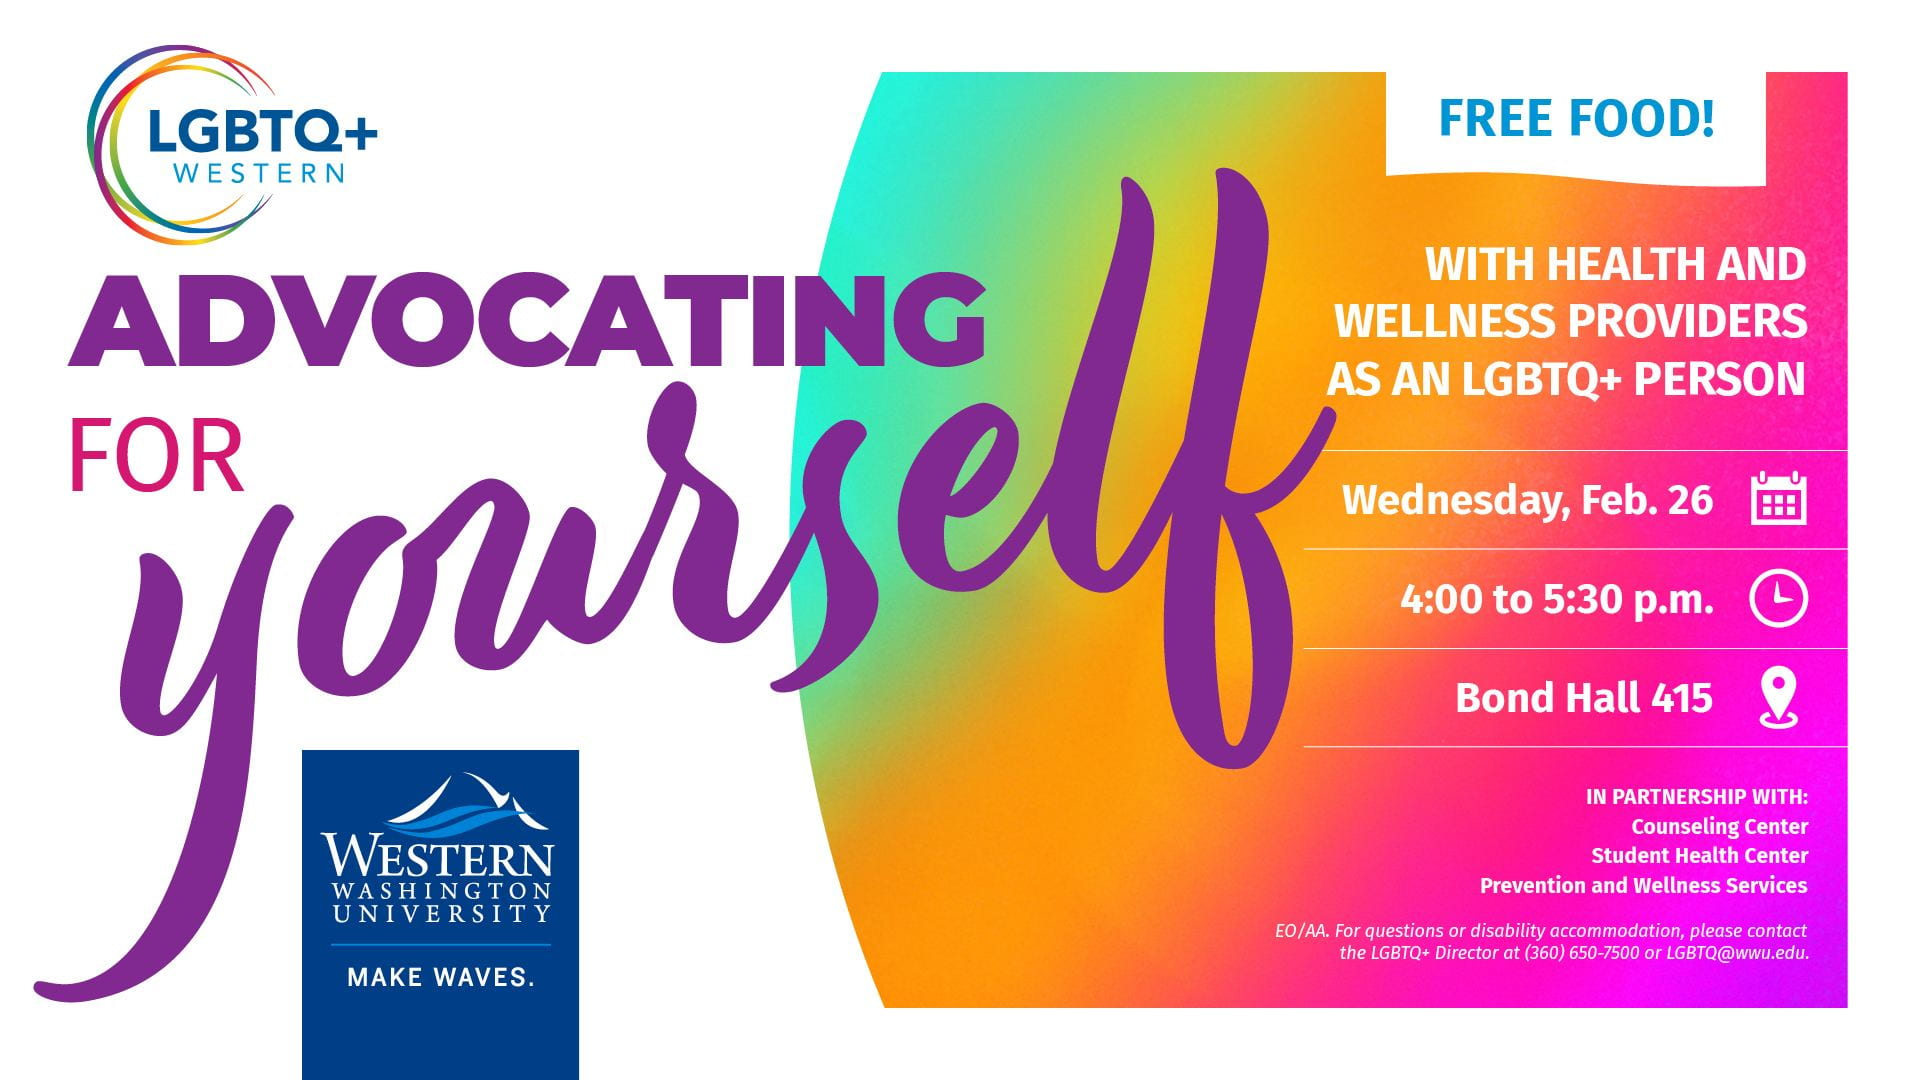 Advocating for Yourself with Health & Wellness Providers. Wednesday, Feb. 26 from 4-5:30 in Bond Hall 415. In partnership with the Counseling Center, Student Health Center, Prevention & Wellness Services. For accommodations (360) 650-7500 or LGBTQ@wwu.edu.